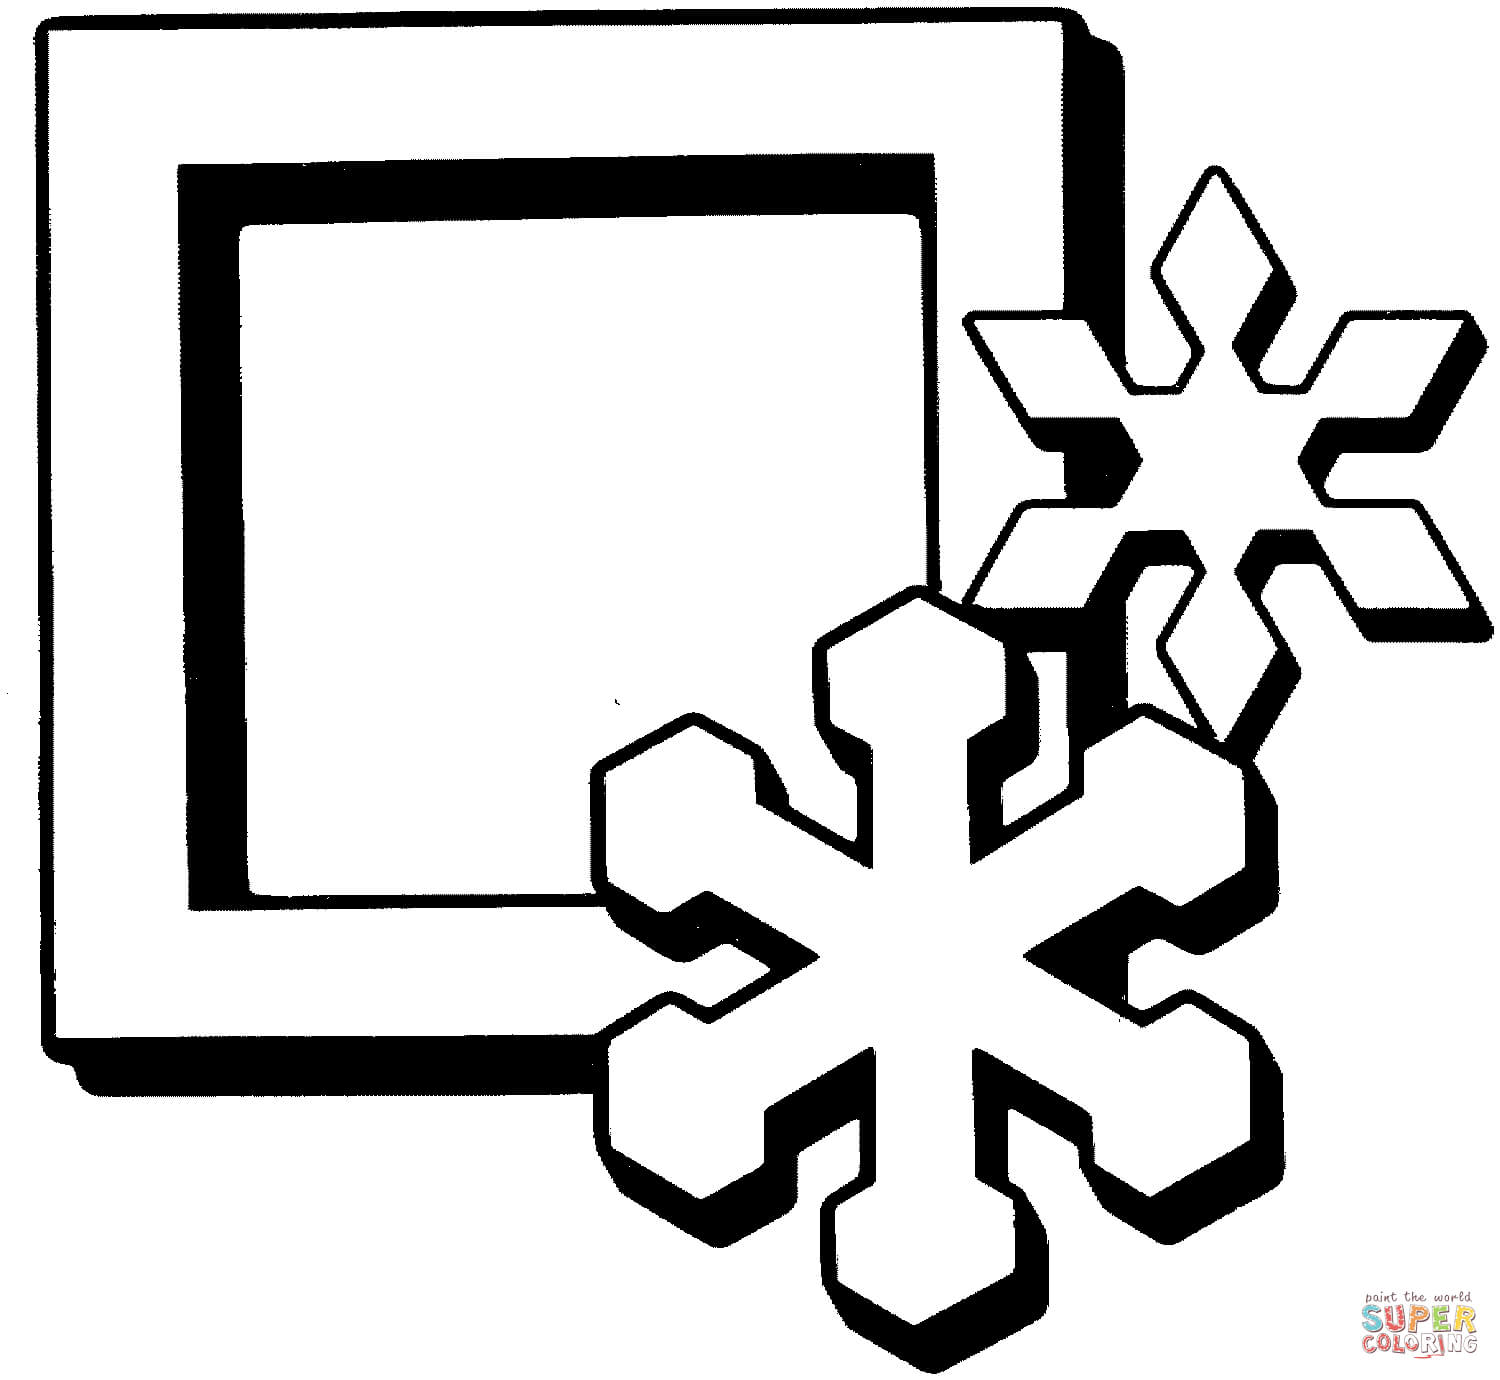 1500x1380 Square With Snowflakes Coloring Page Free Printable Coloring Pages